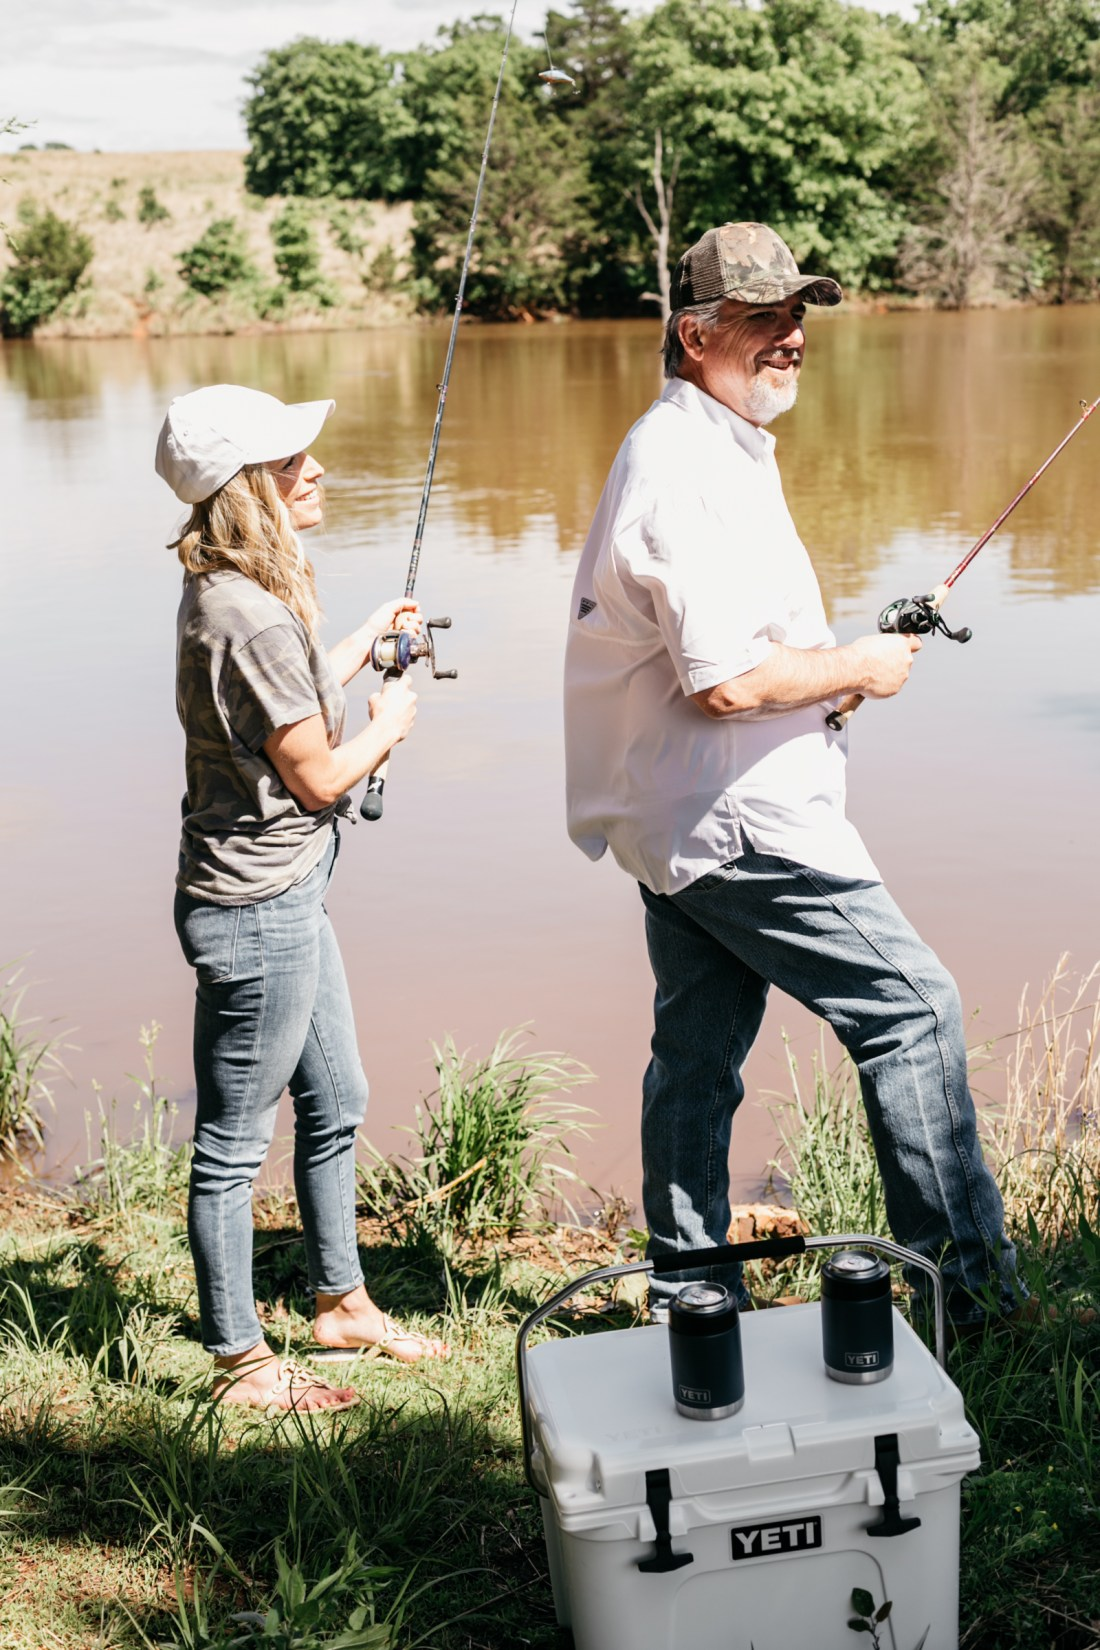 FATHER'S DAY GIFTS - Yeti cooler and can holders